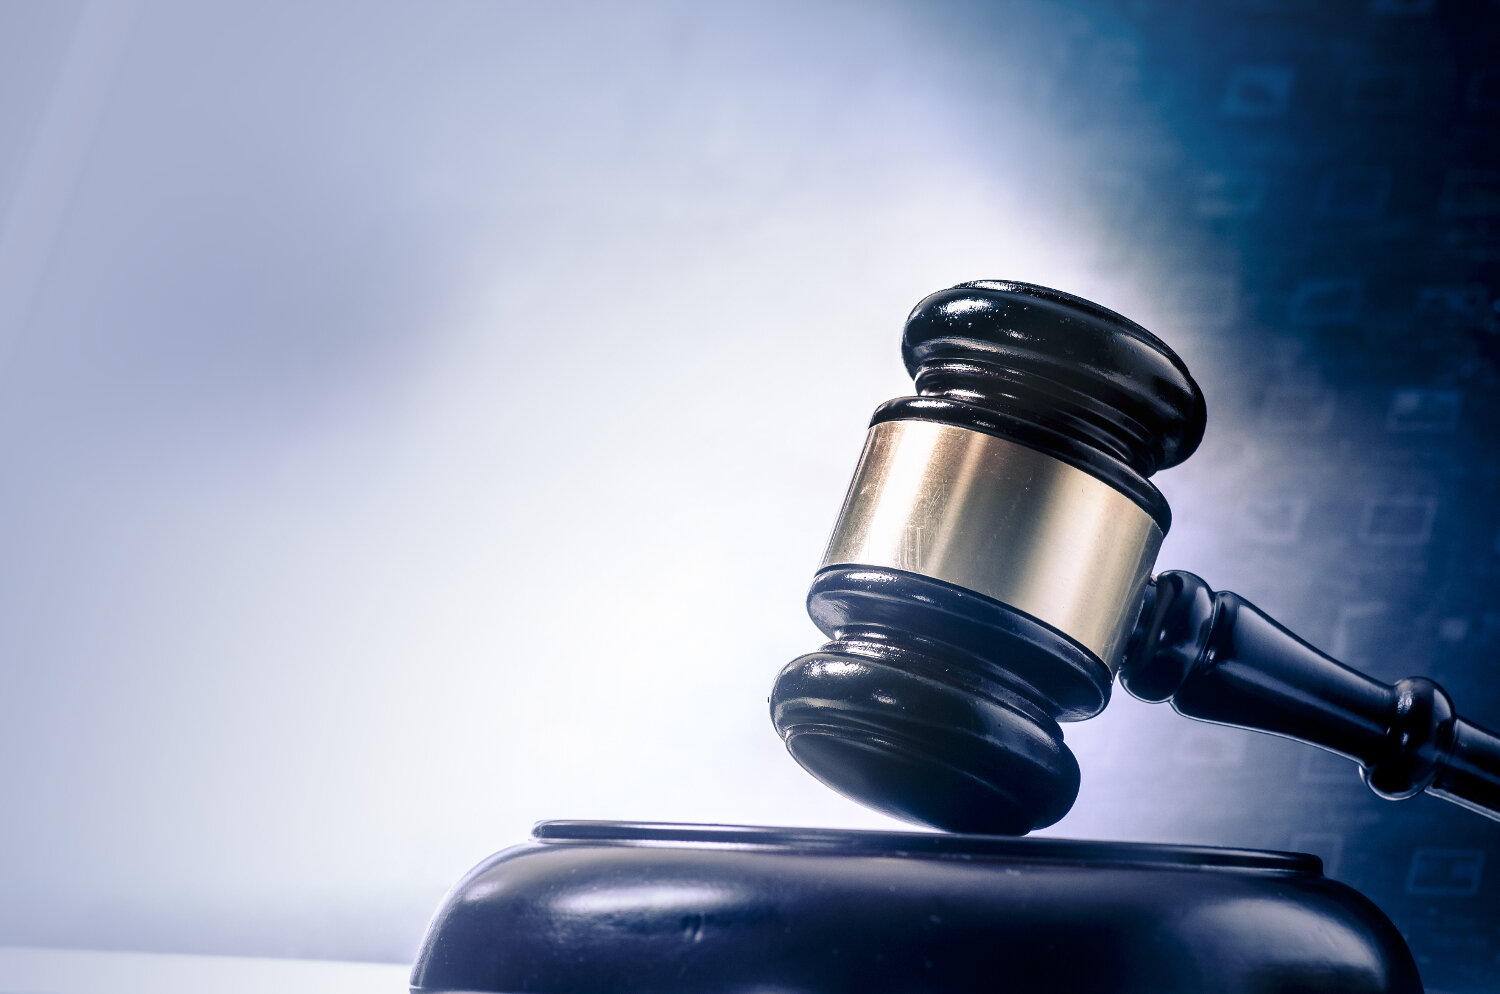 Ninth Circuit allows enforcement of California's AB5 against motor carriers